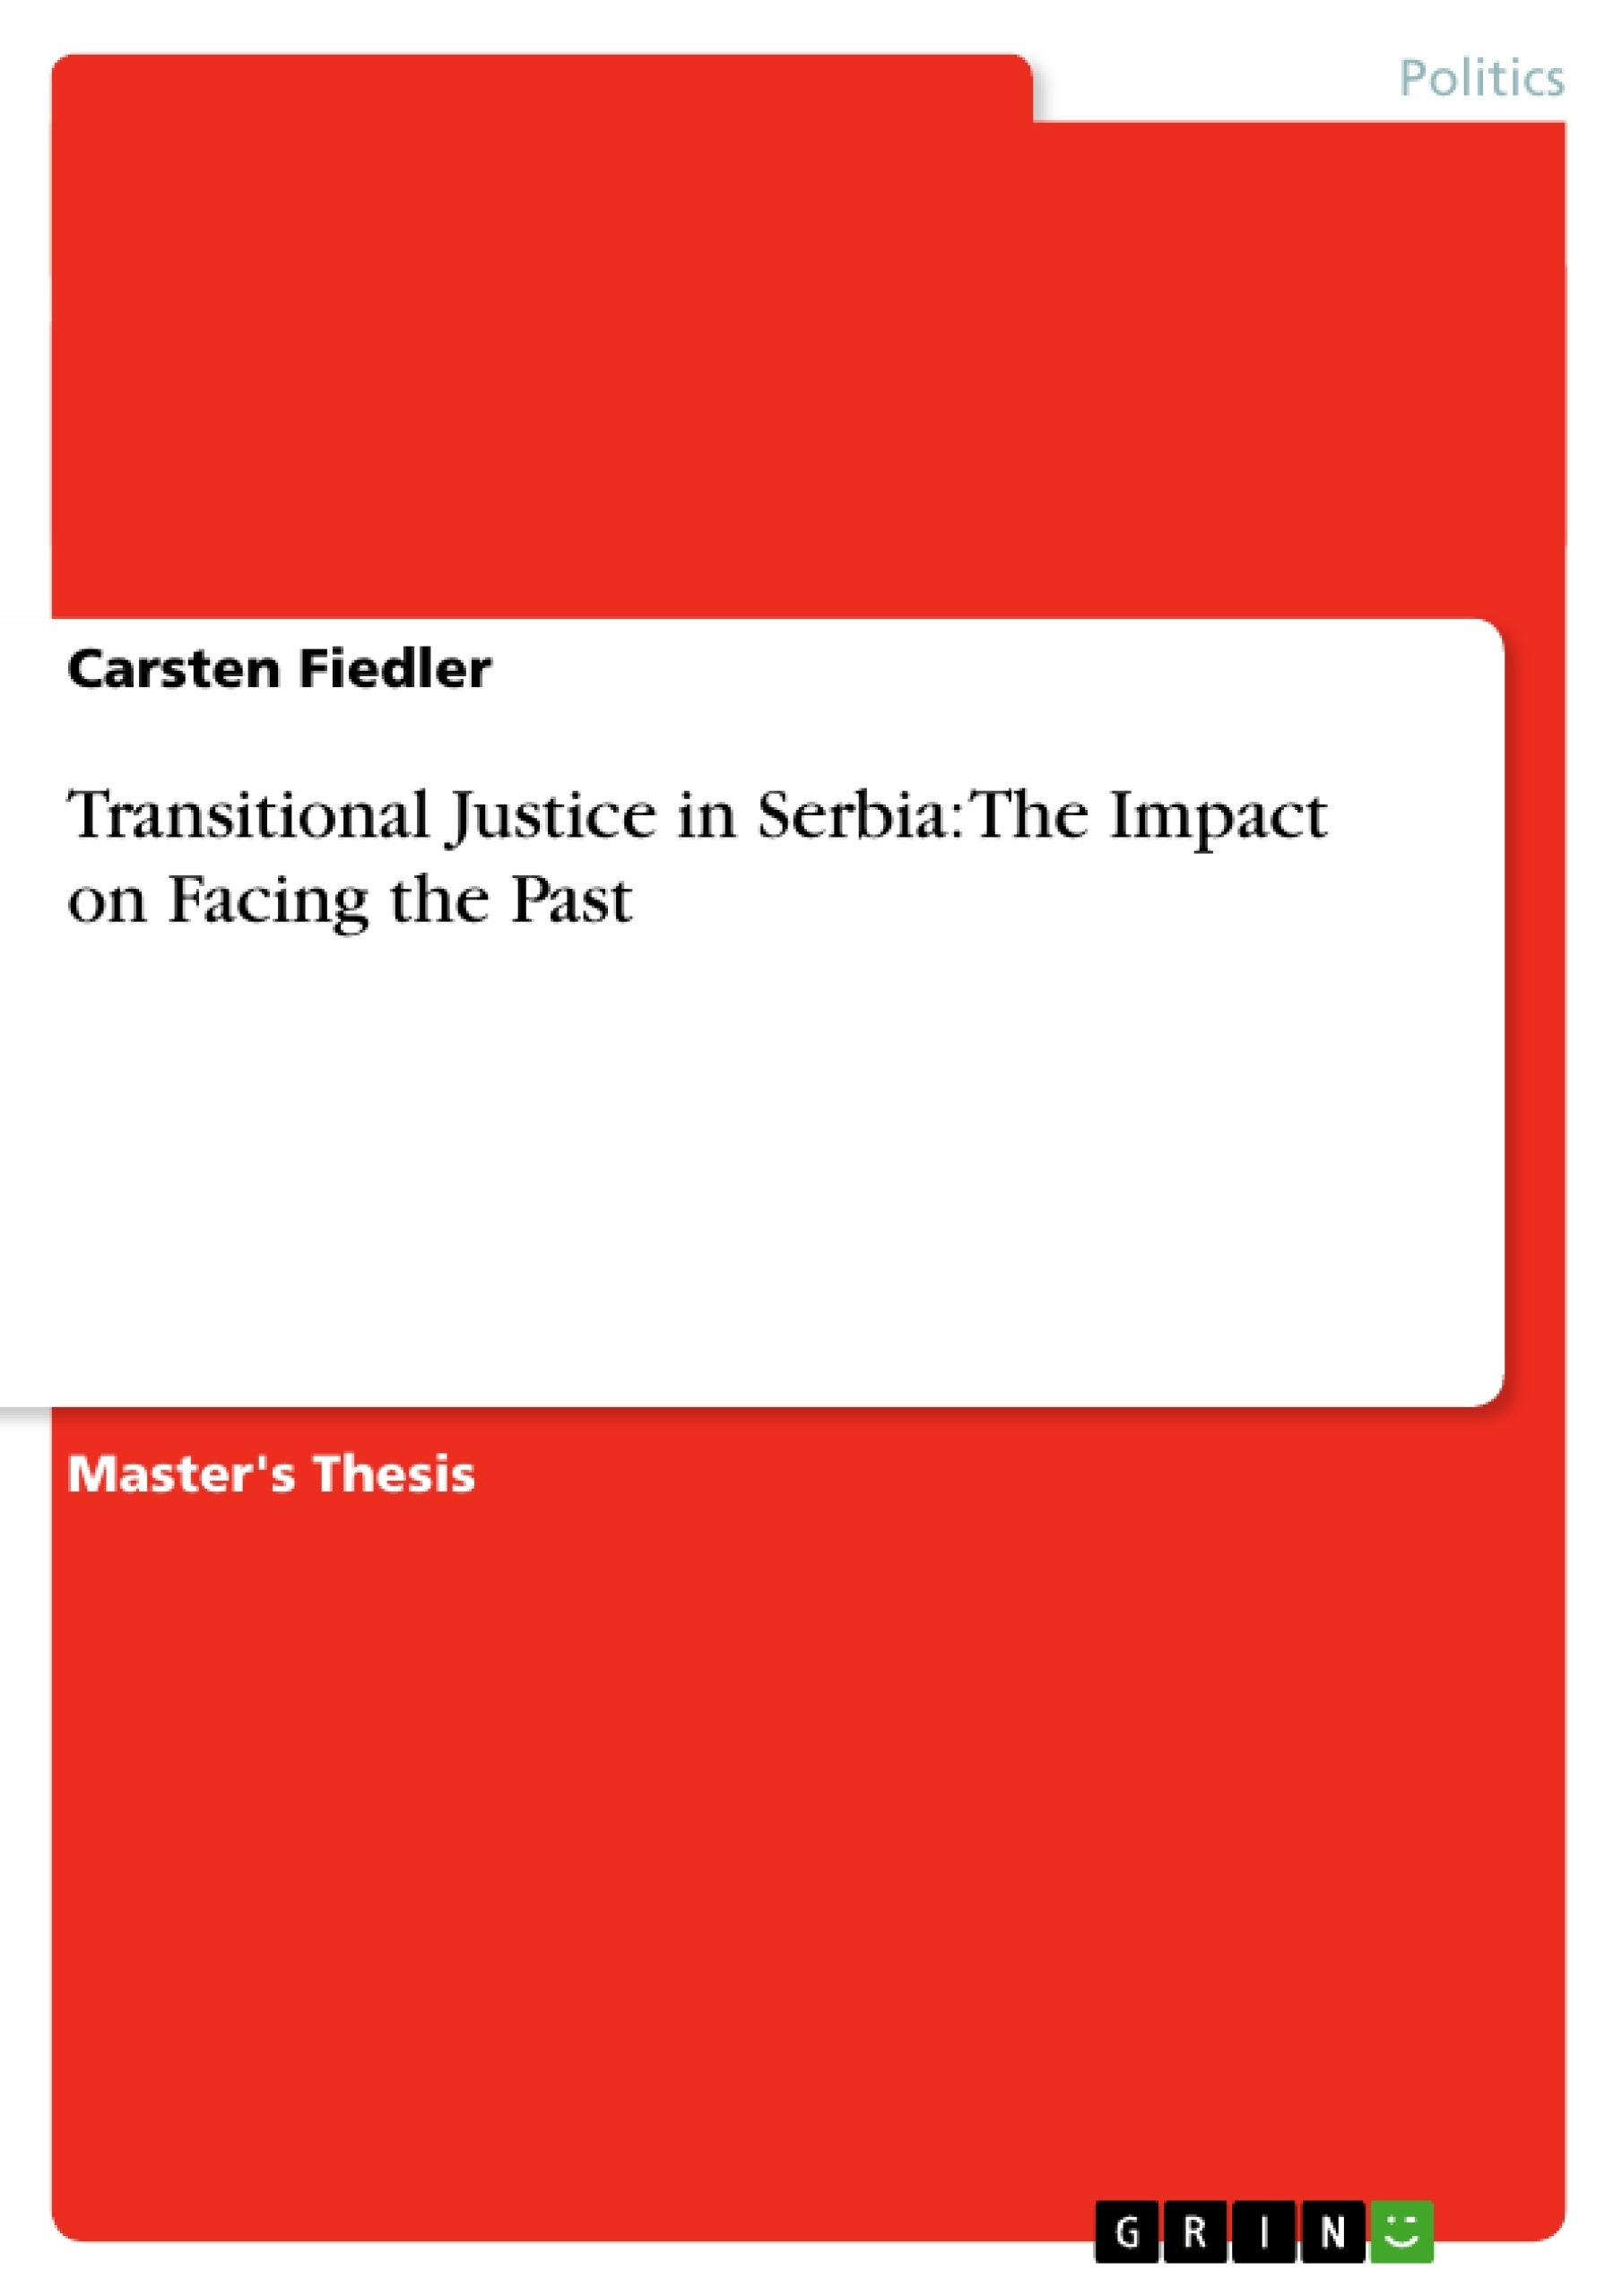 Title: Transitional Justice in Serbia: The Impact on Facing the Past